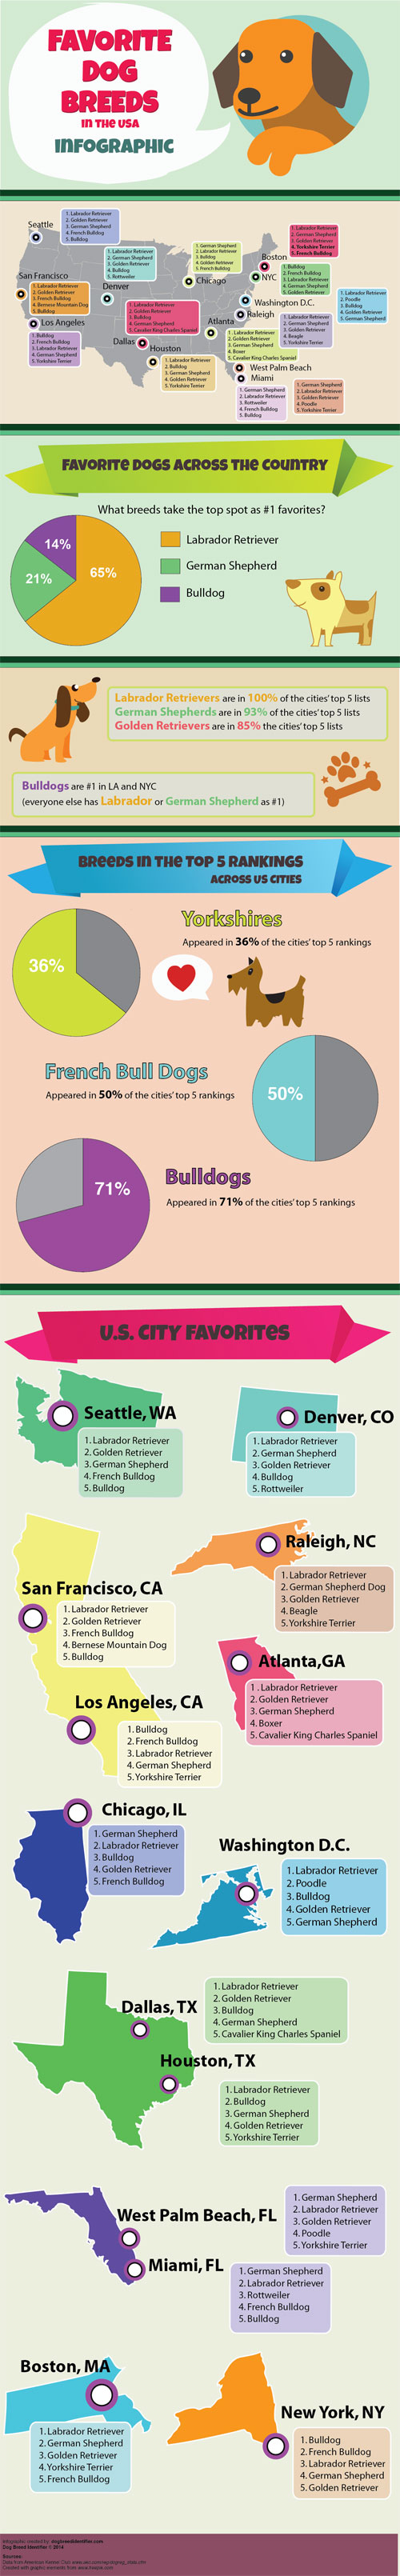 Most Popular Dog Breeds in United States